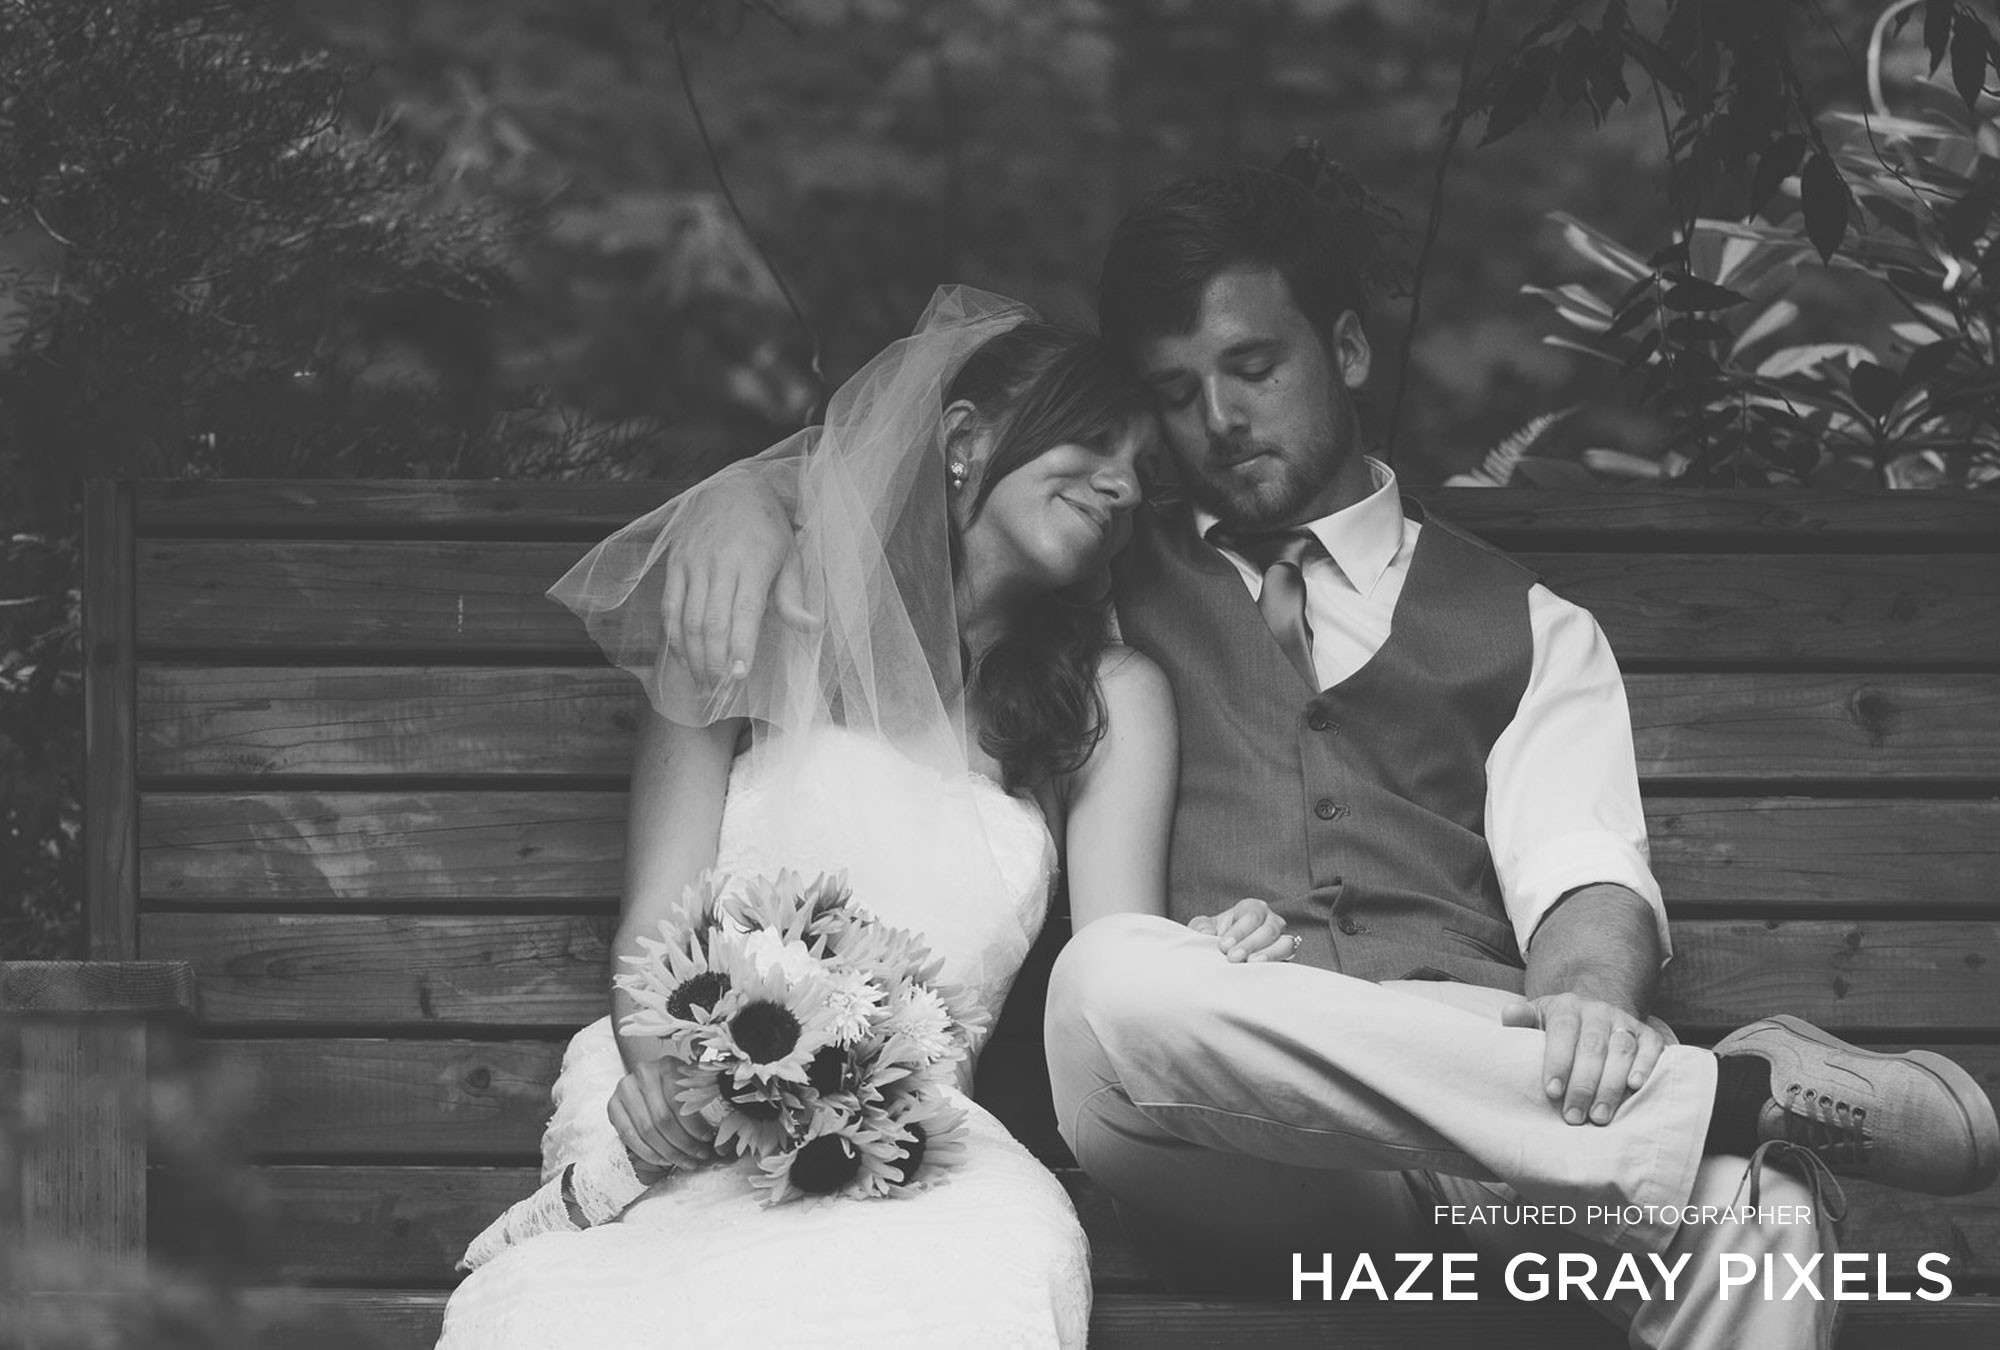 Haze Gray Pixels